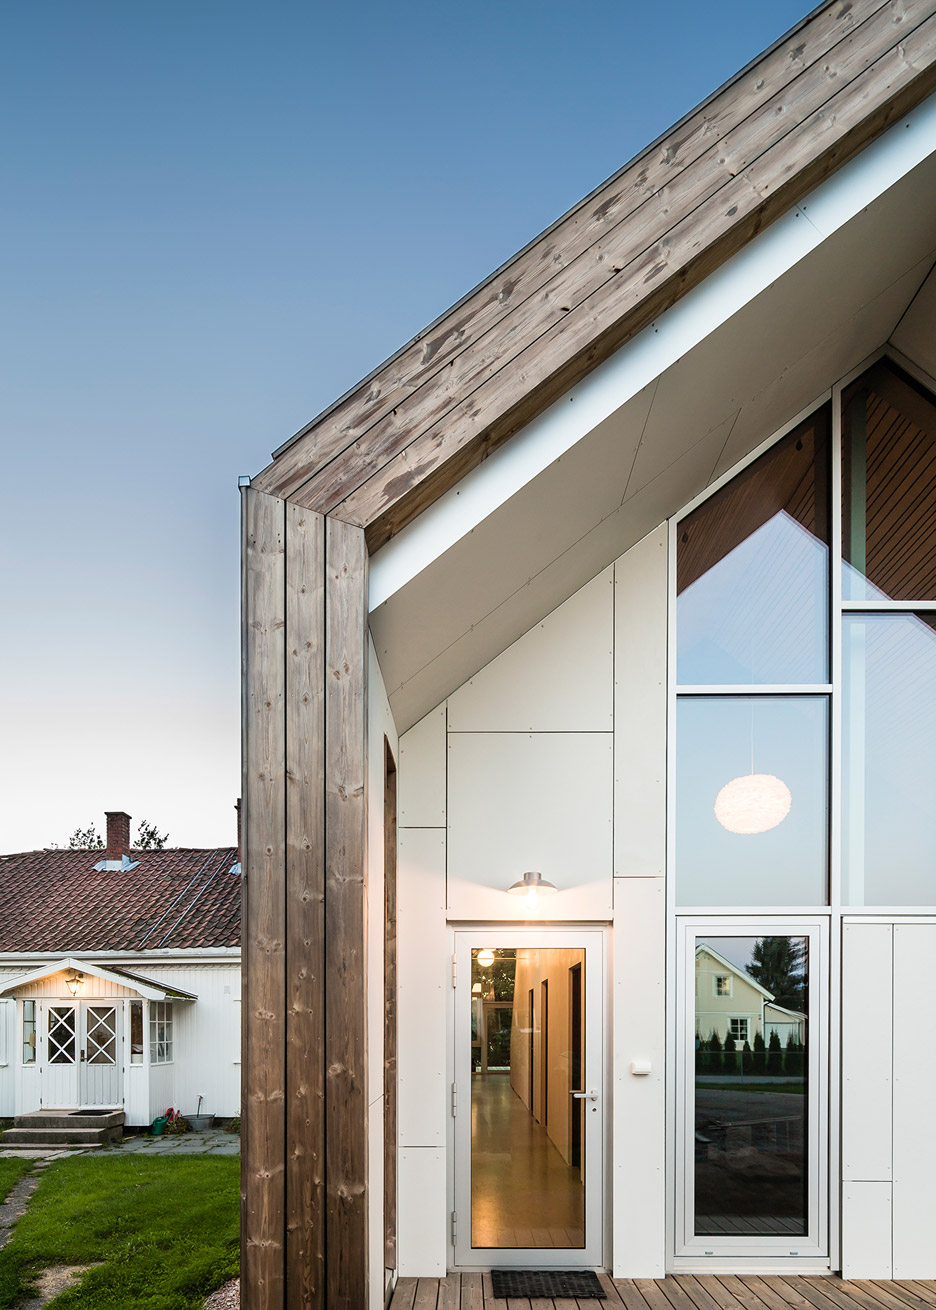 Øvre Tomtegate 7 by Link Arkitektur residential gabled extension architecture Norway